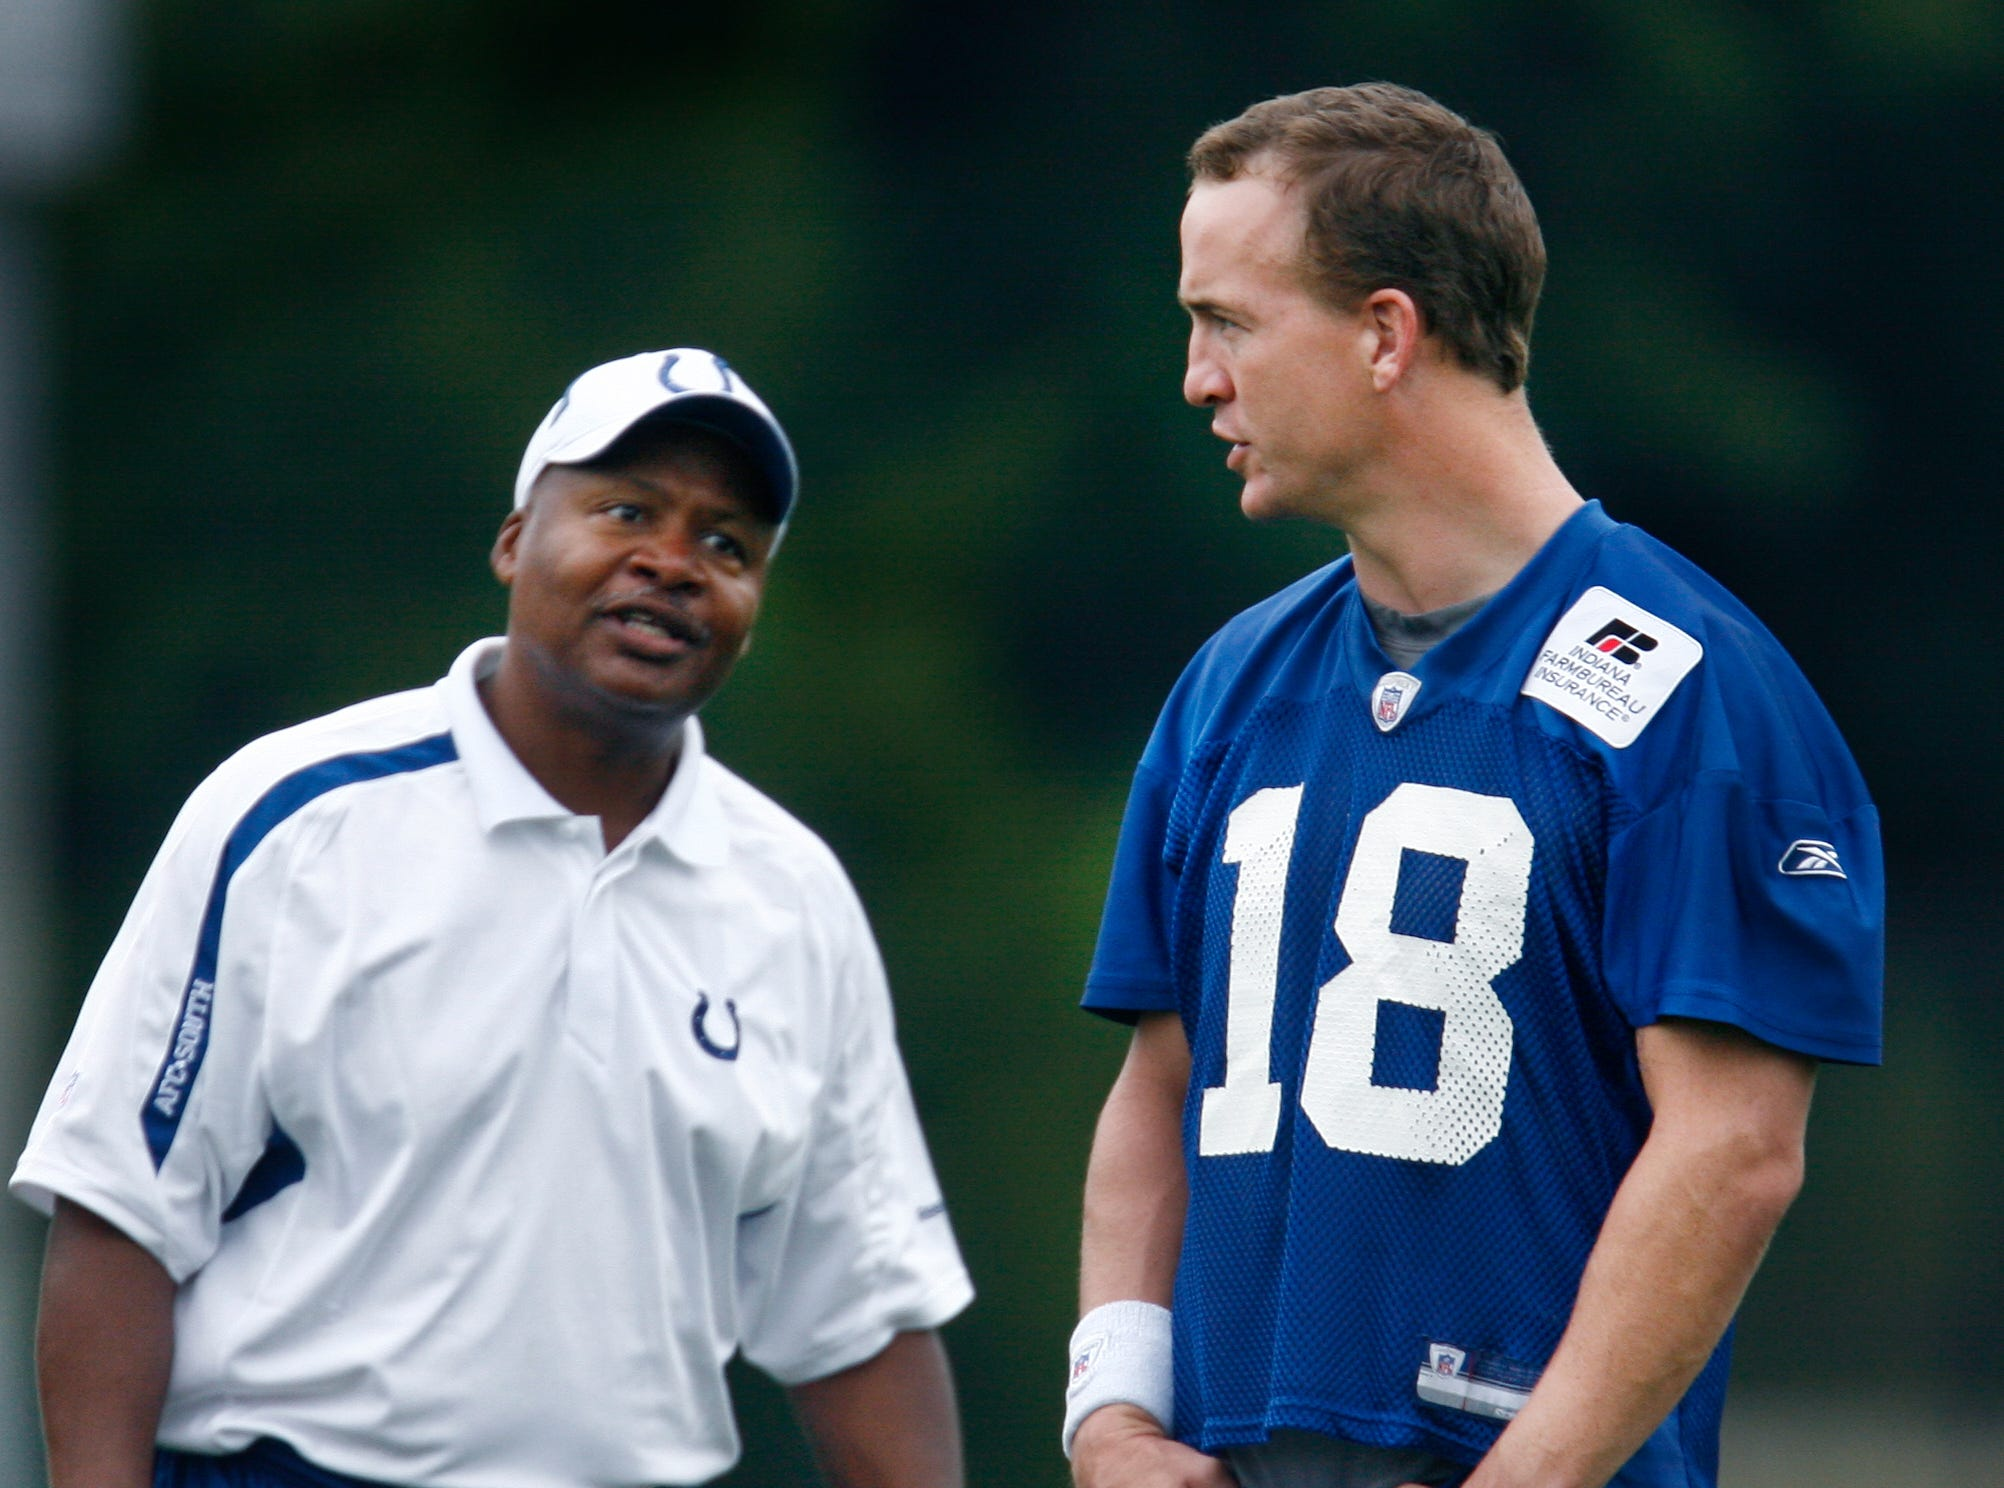 Indianapolis Colts Head Coach Jim Caldwell and quarterback Peyton Manning talk on the field before the team's light one-hour final training camp practice at Rose-Hulman Institute of Technology in Terre Haute on Wednesday, August 19, 2009.